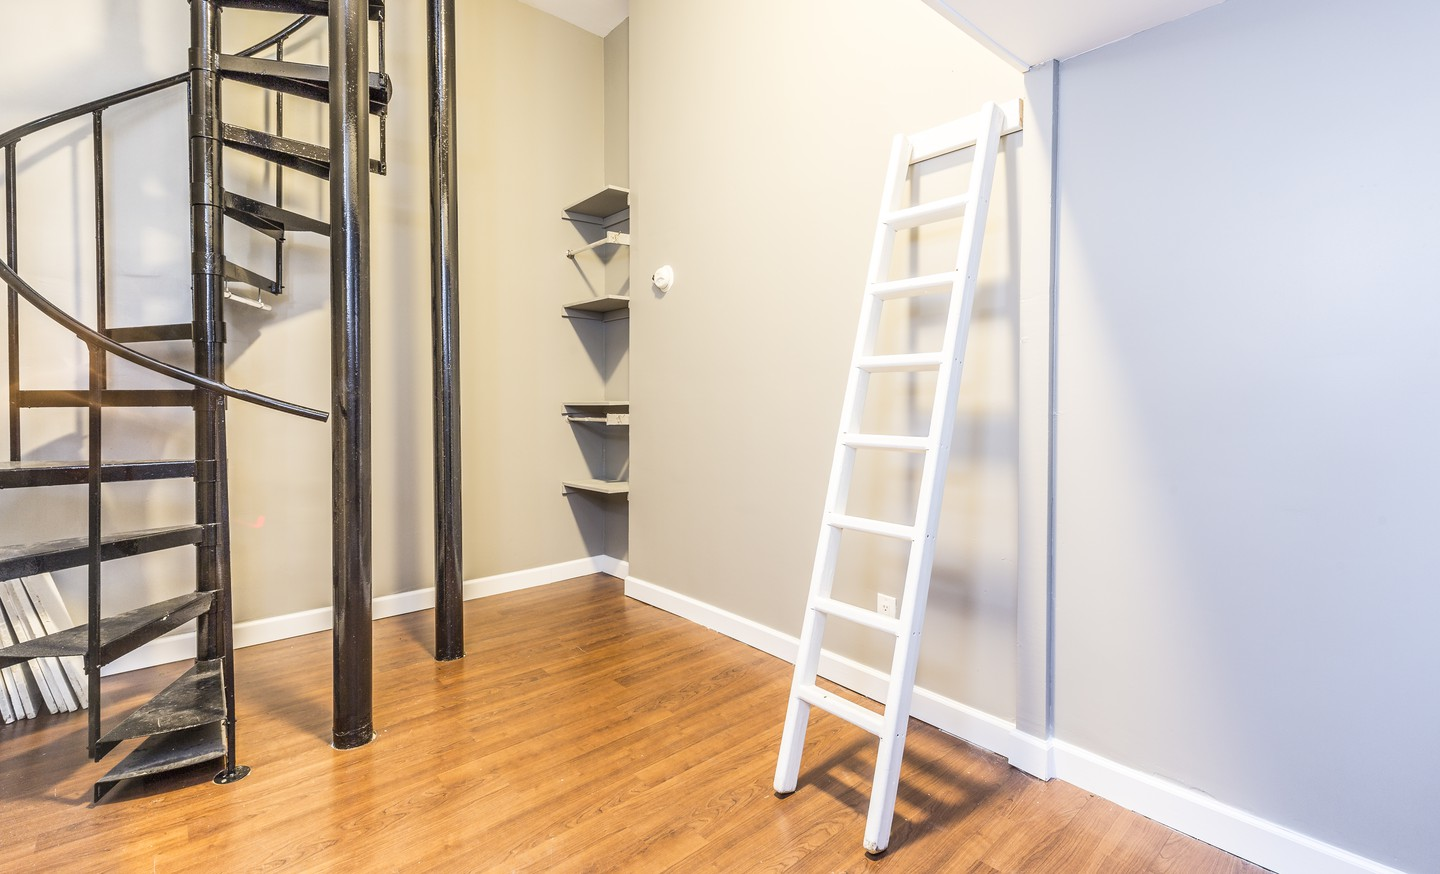 Sublets Near The Mount Private Bedroom in Stylish East Village Apartment Near The J Line for College of Mount Saint Vincent Students in Bronx, NY